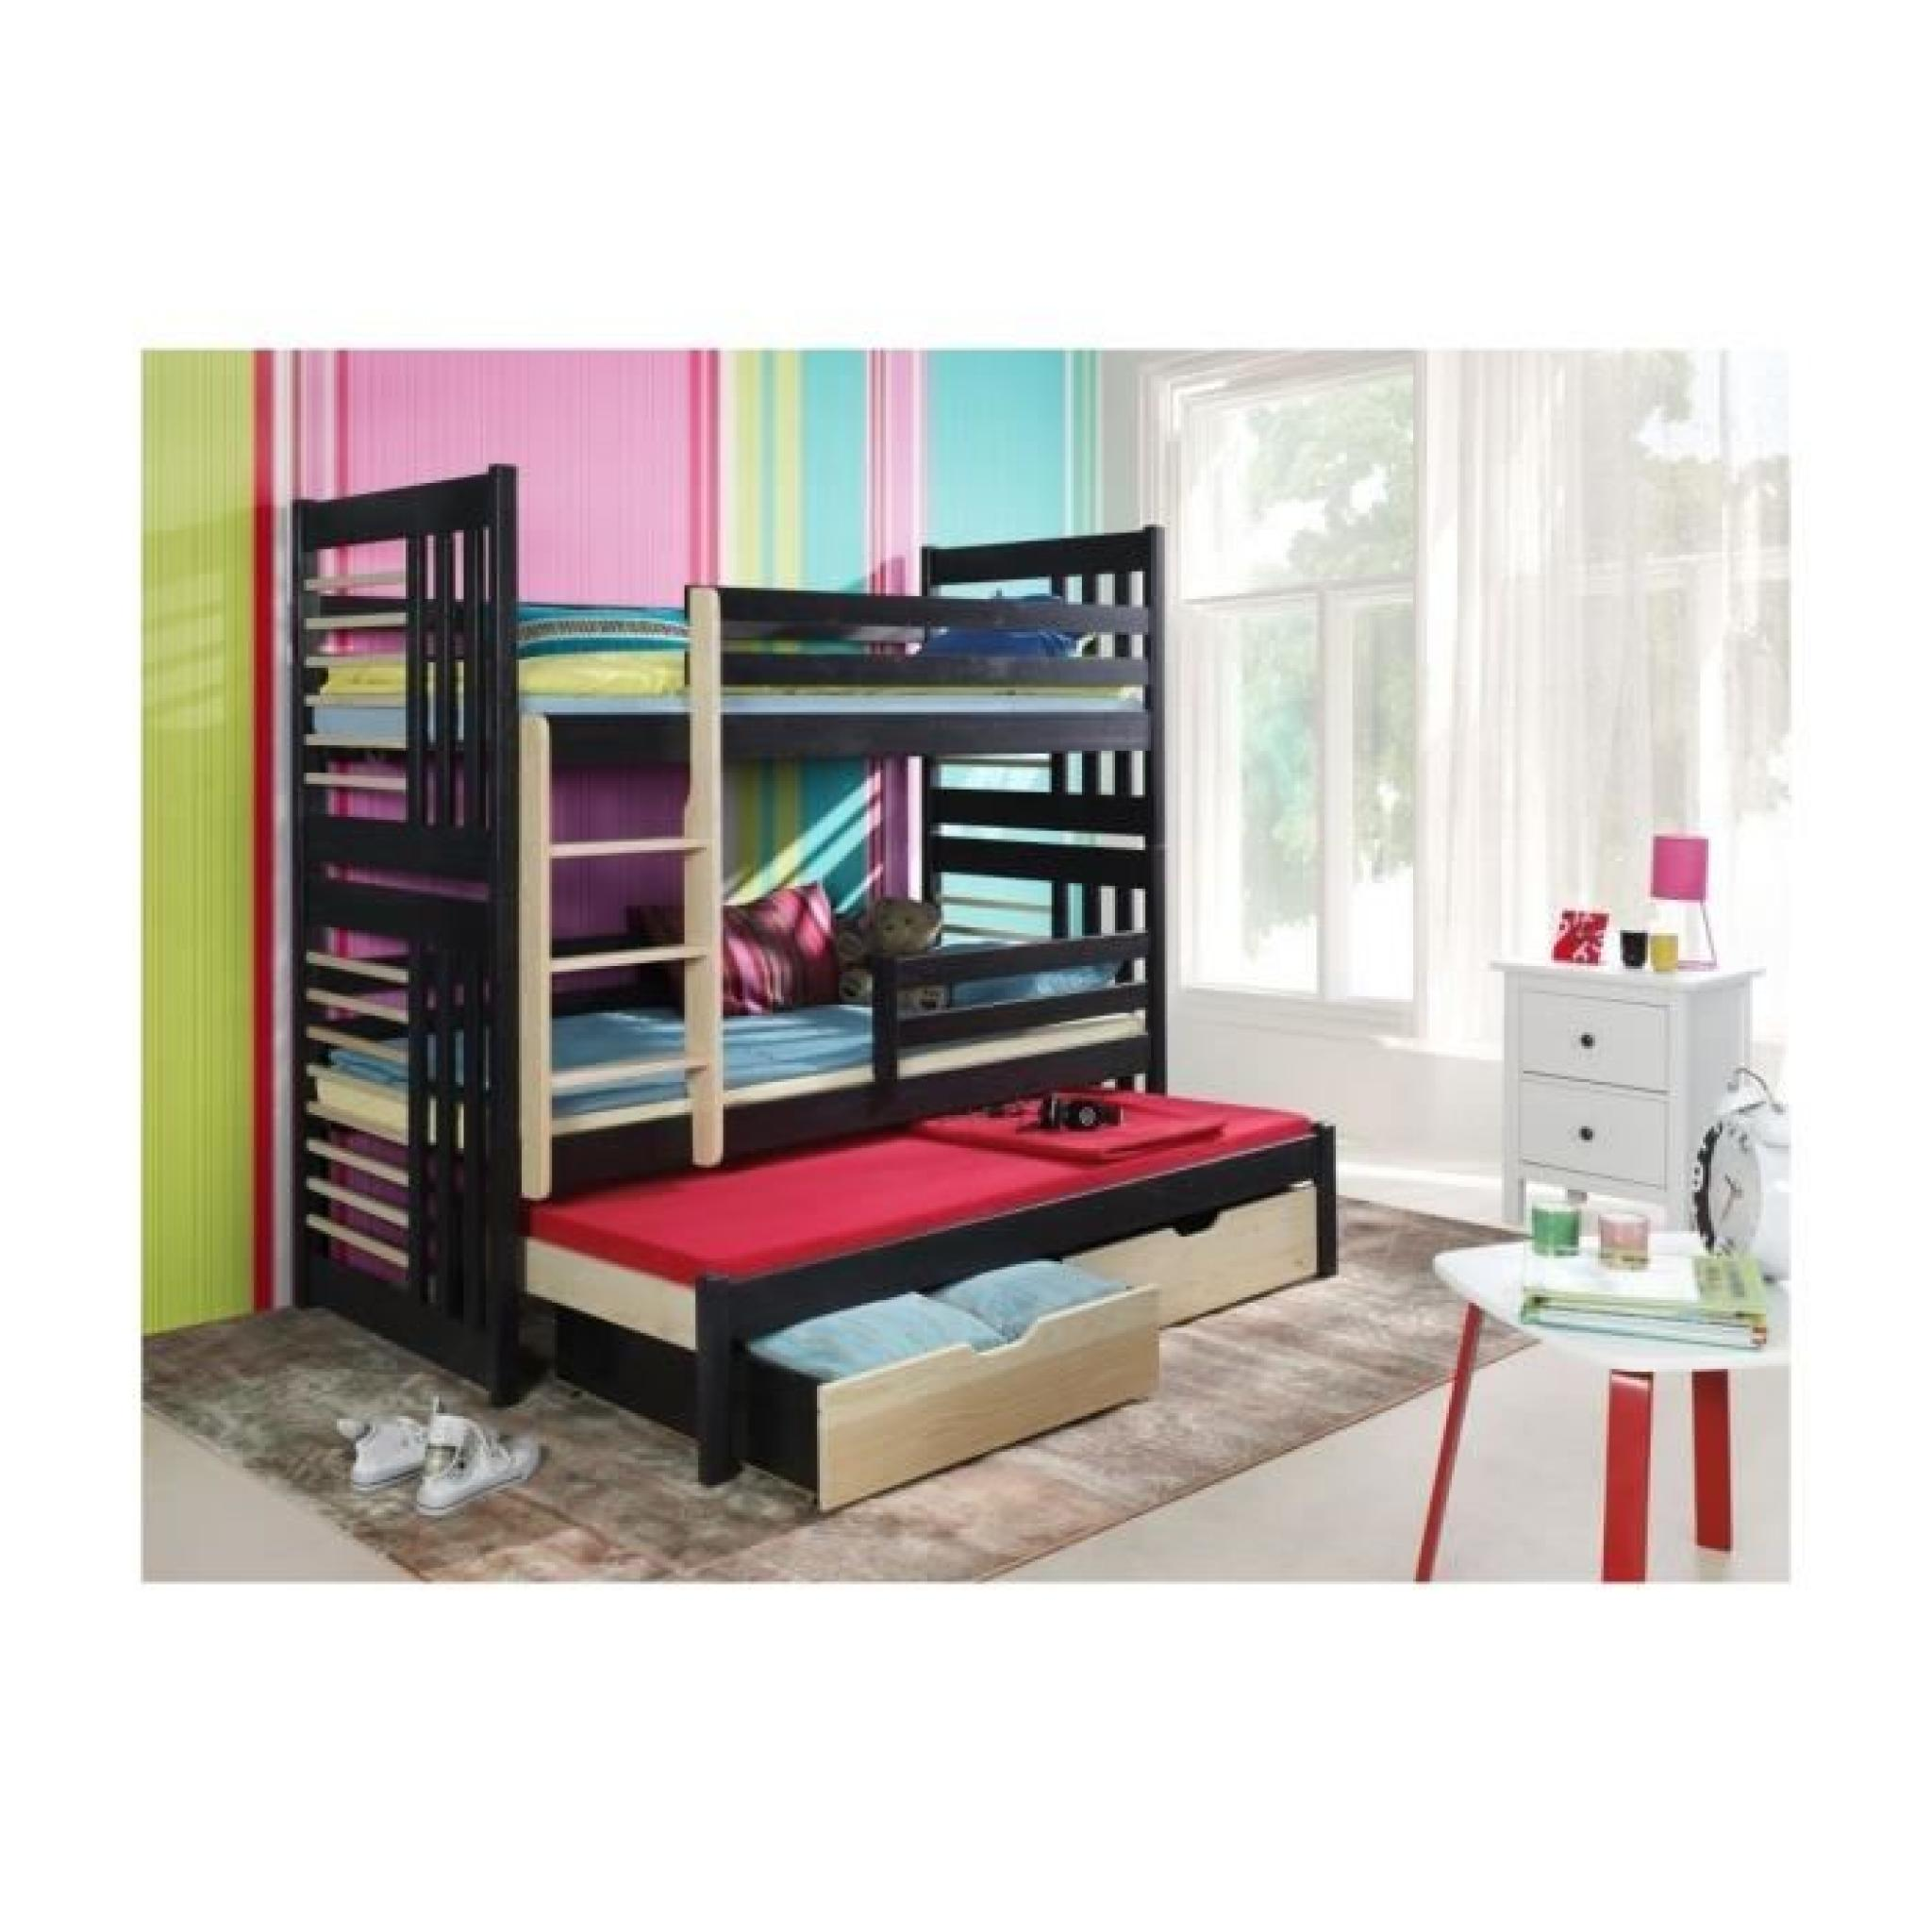 lit escamotable camion meuble de salon contemporain. Black Bedroom Furniture Sets. Home Design Ideas